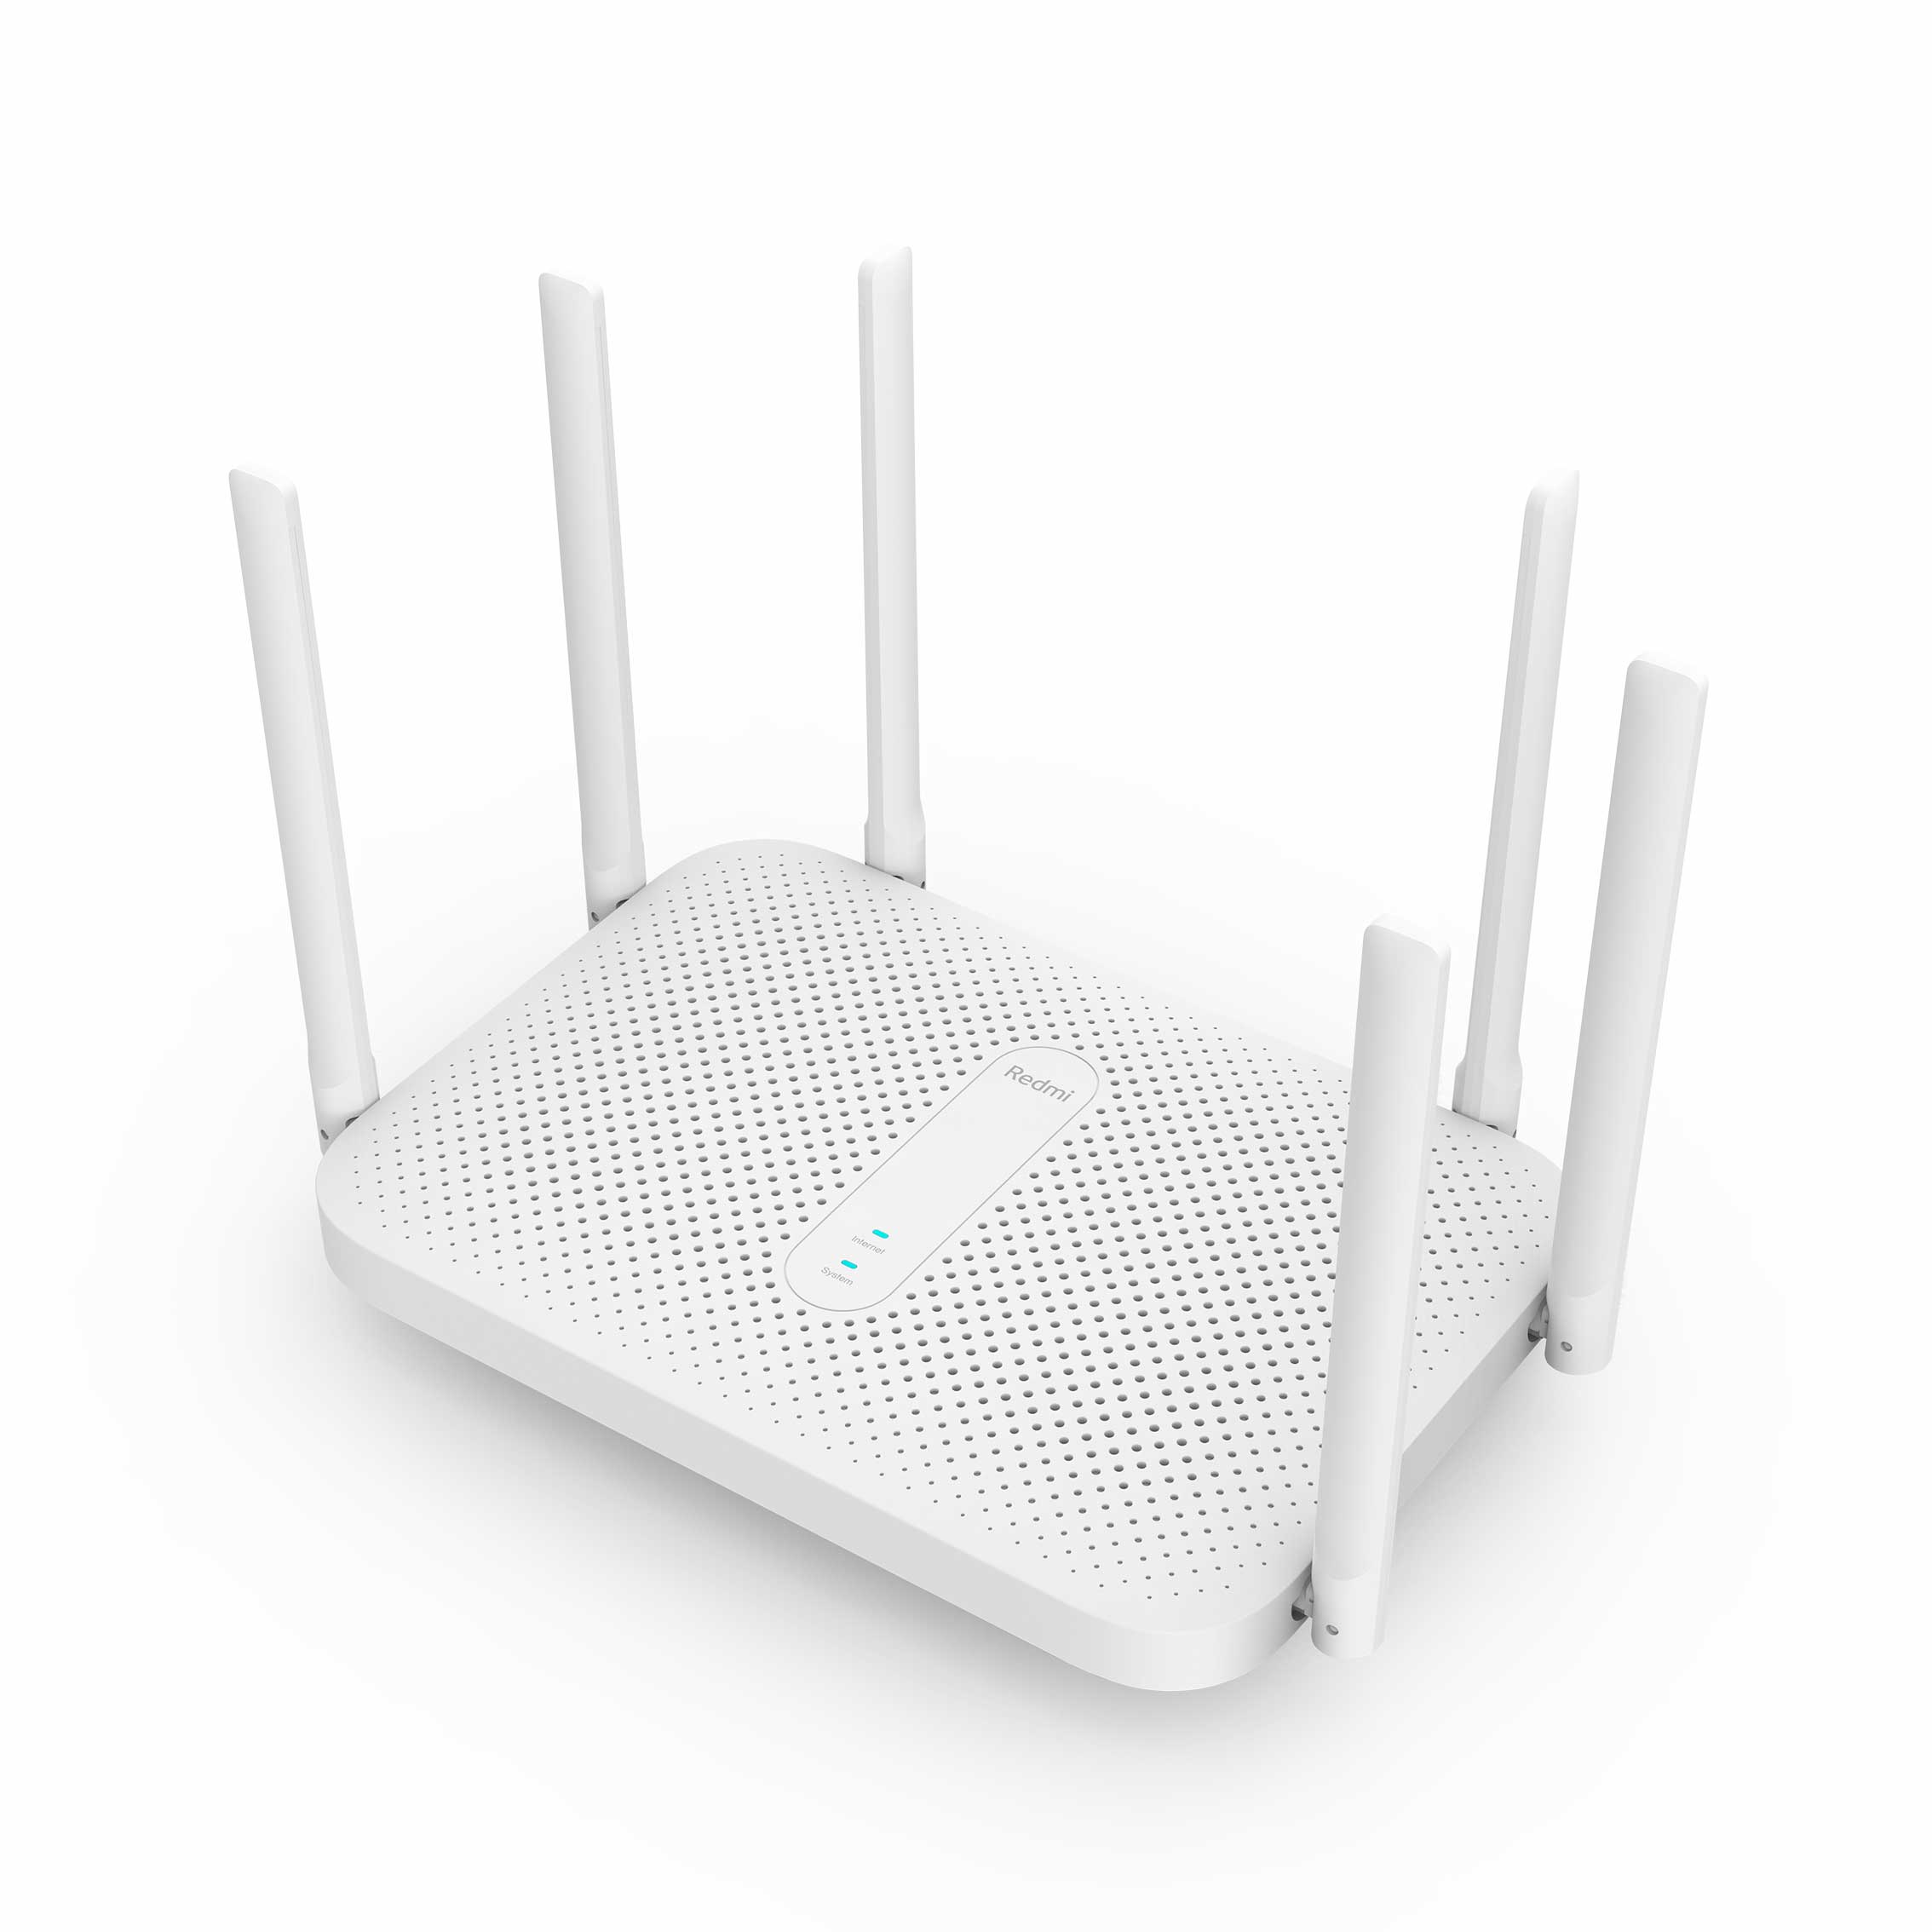 Xiaomi Redmi AC2100 Wireless Router with Gigabit and Dual-Band Repeater along with 6 High Gain Antennas and Wider Coverage 5